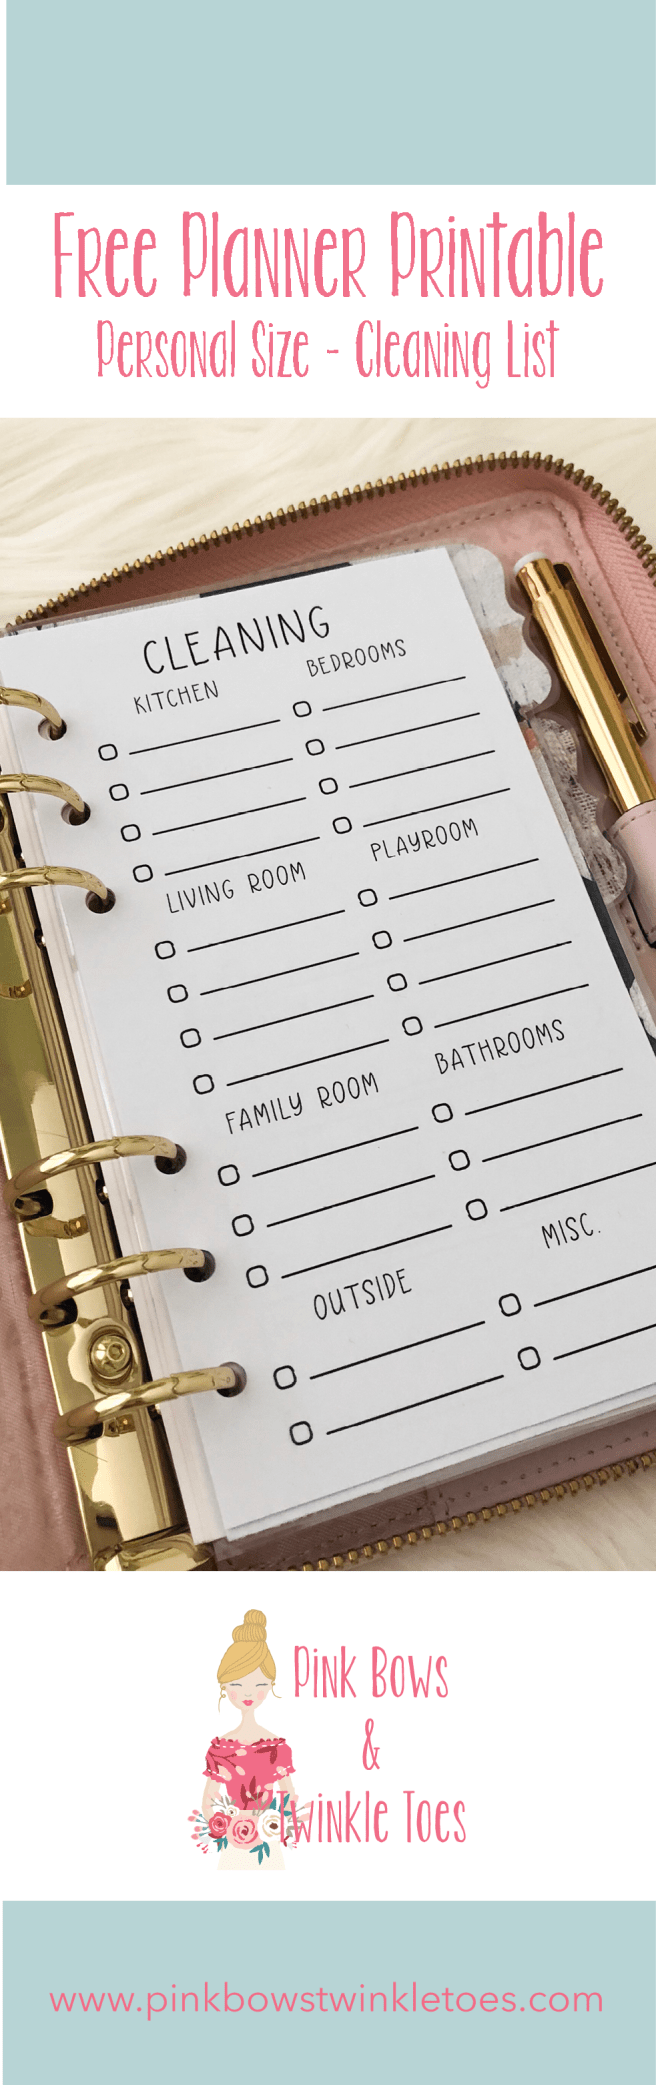 Cleaning Checklist Insert: Free Personal Size Planner Printable - Pink Bows & Twinkle Toes